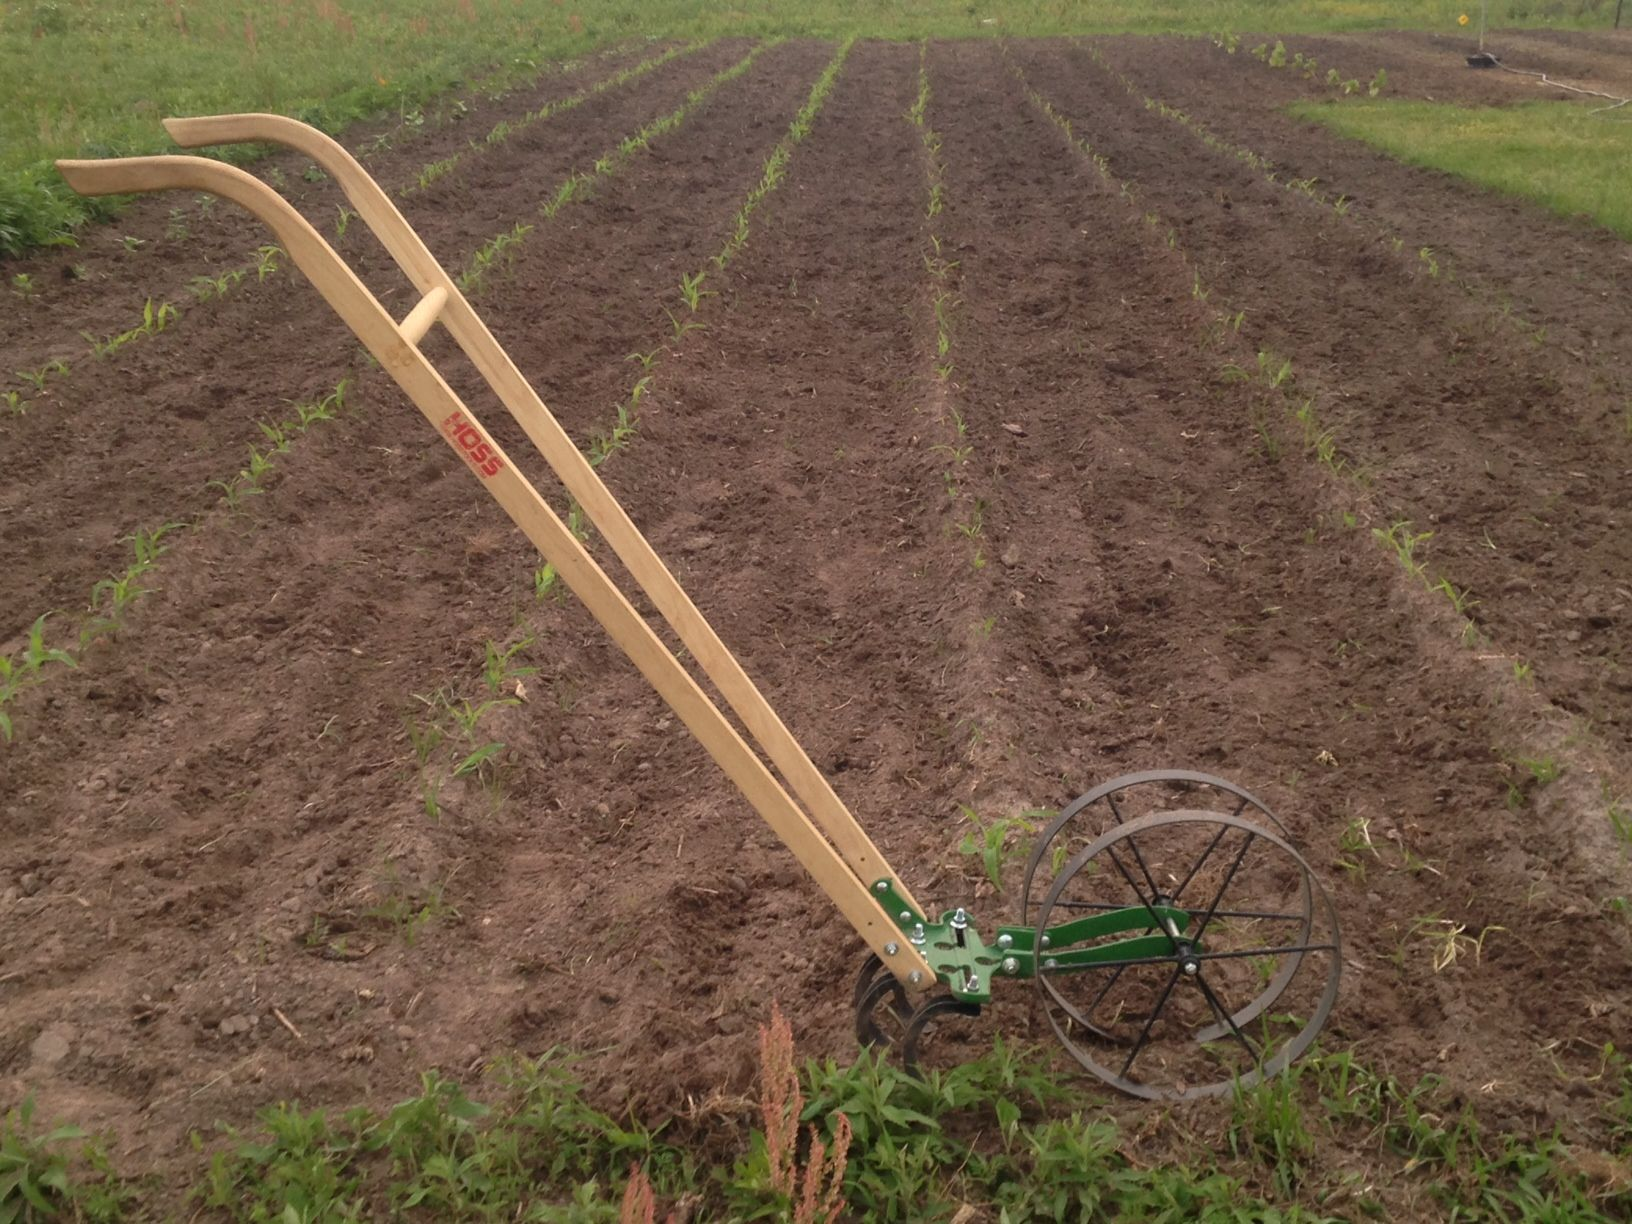 The Hoss Wheel Hoe works great for keeping nut grass under control ...